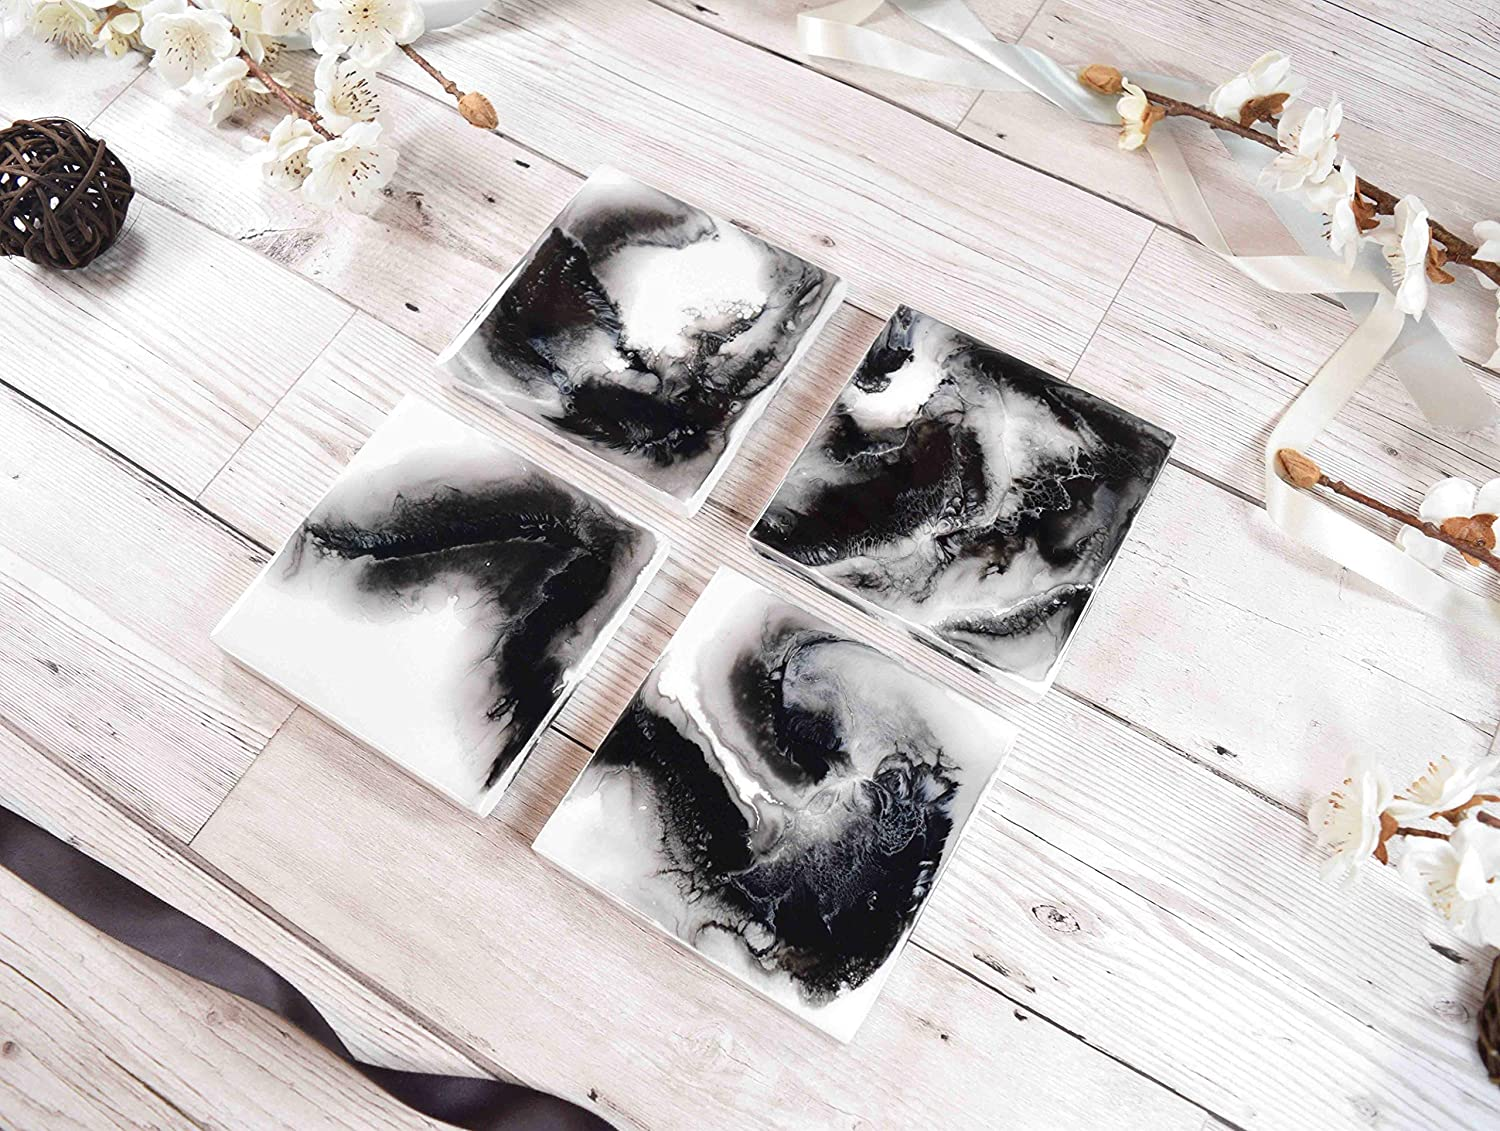 Drinks coasters with black and white resin art amazon ca handmade